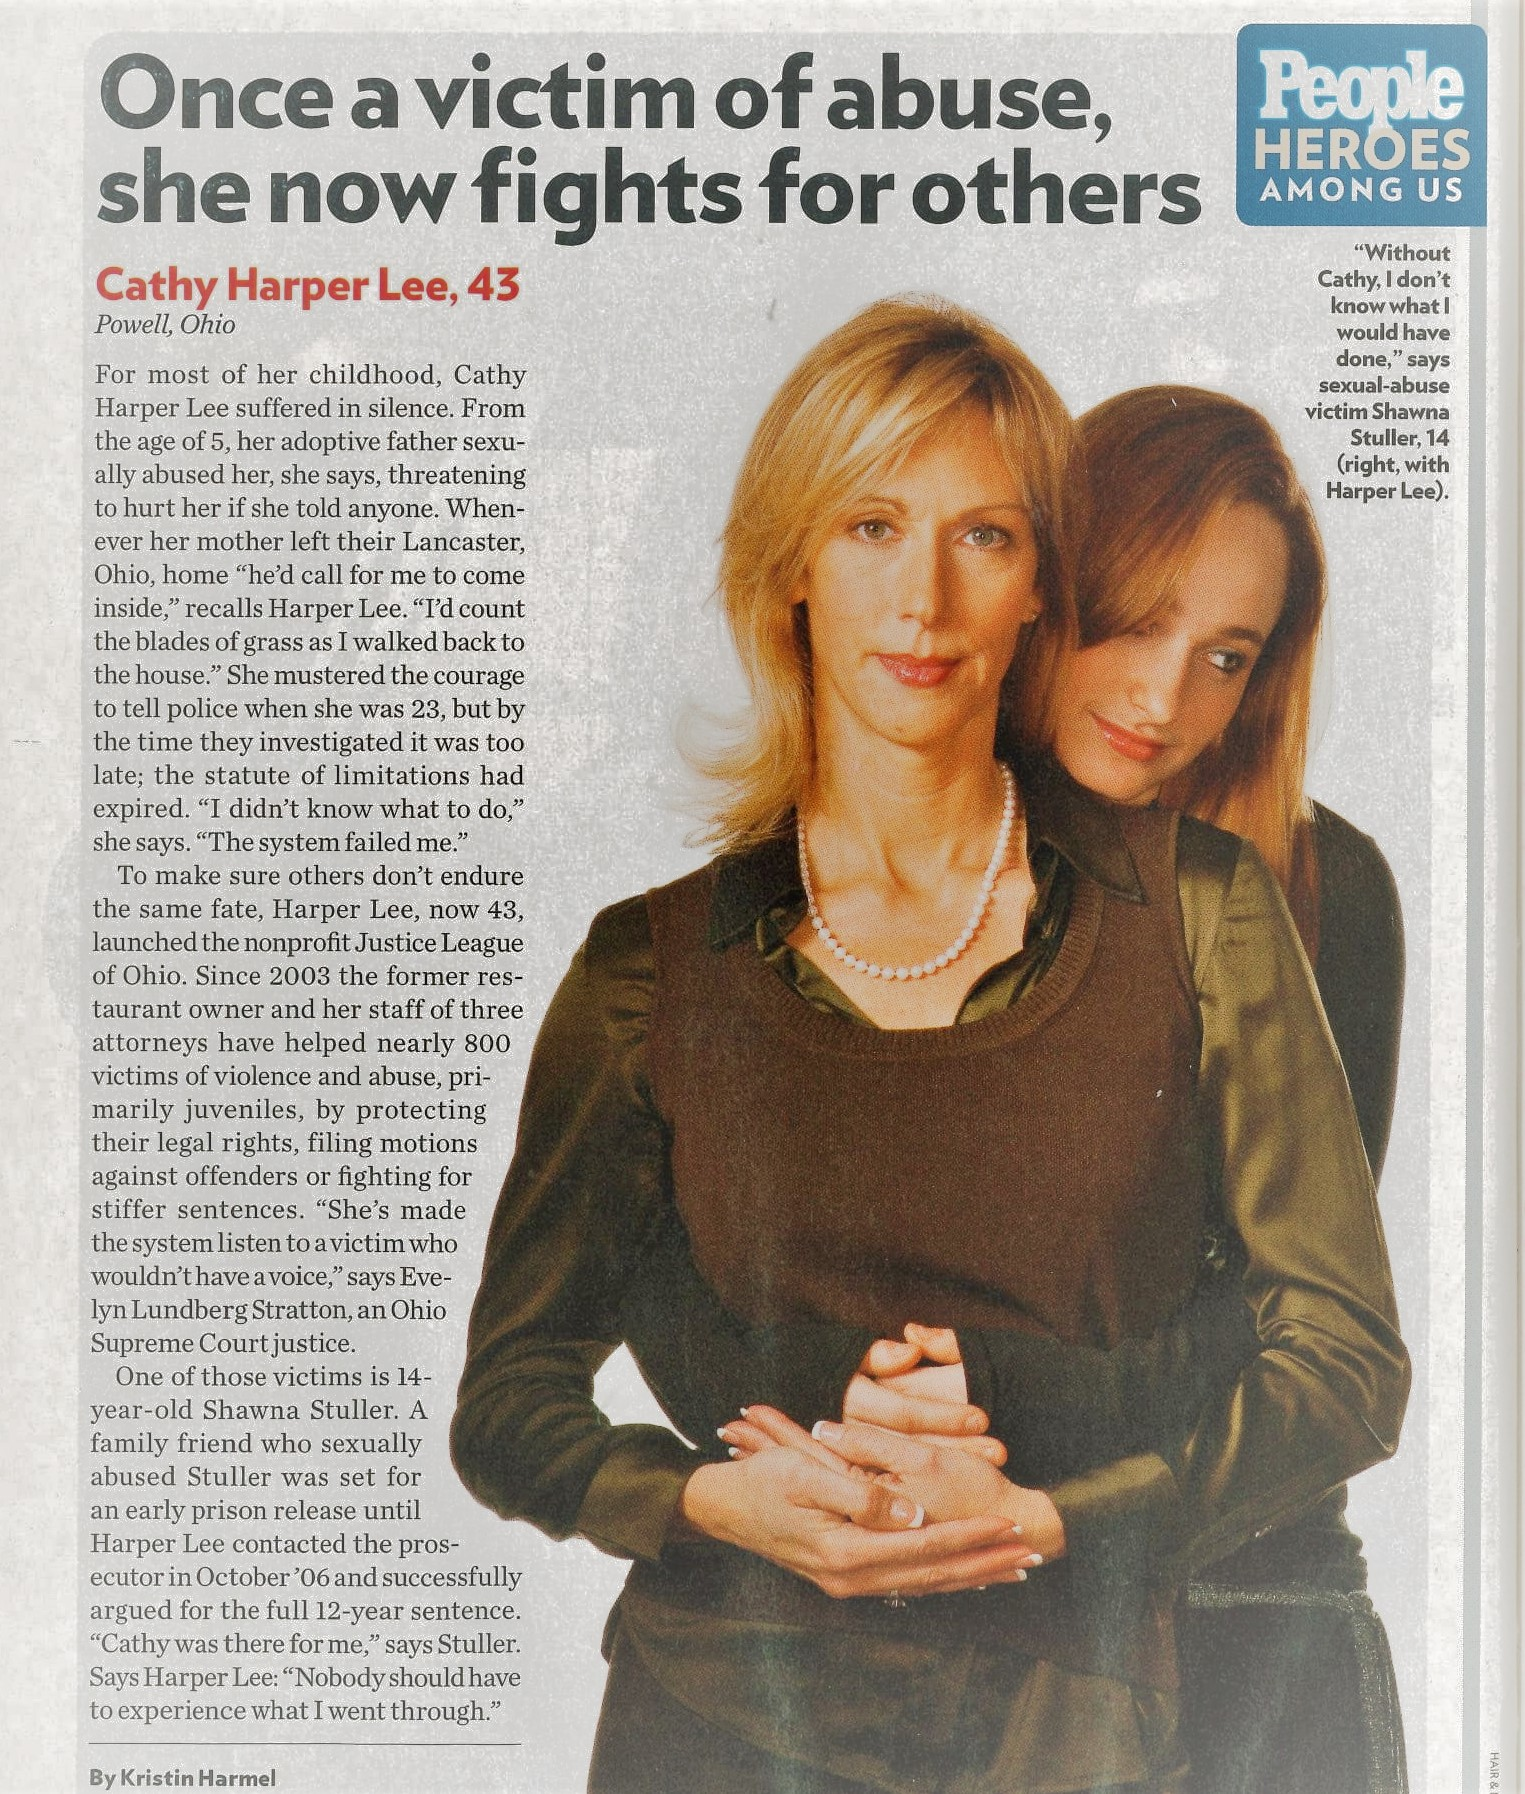 People Magazine: Heroes Among Us - 2008 - Cathy Harper Lee was featured in People Magazine